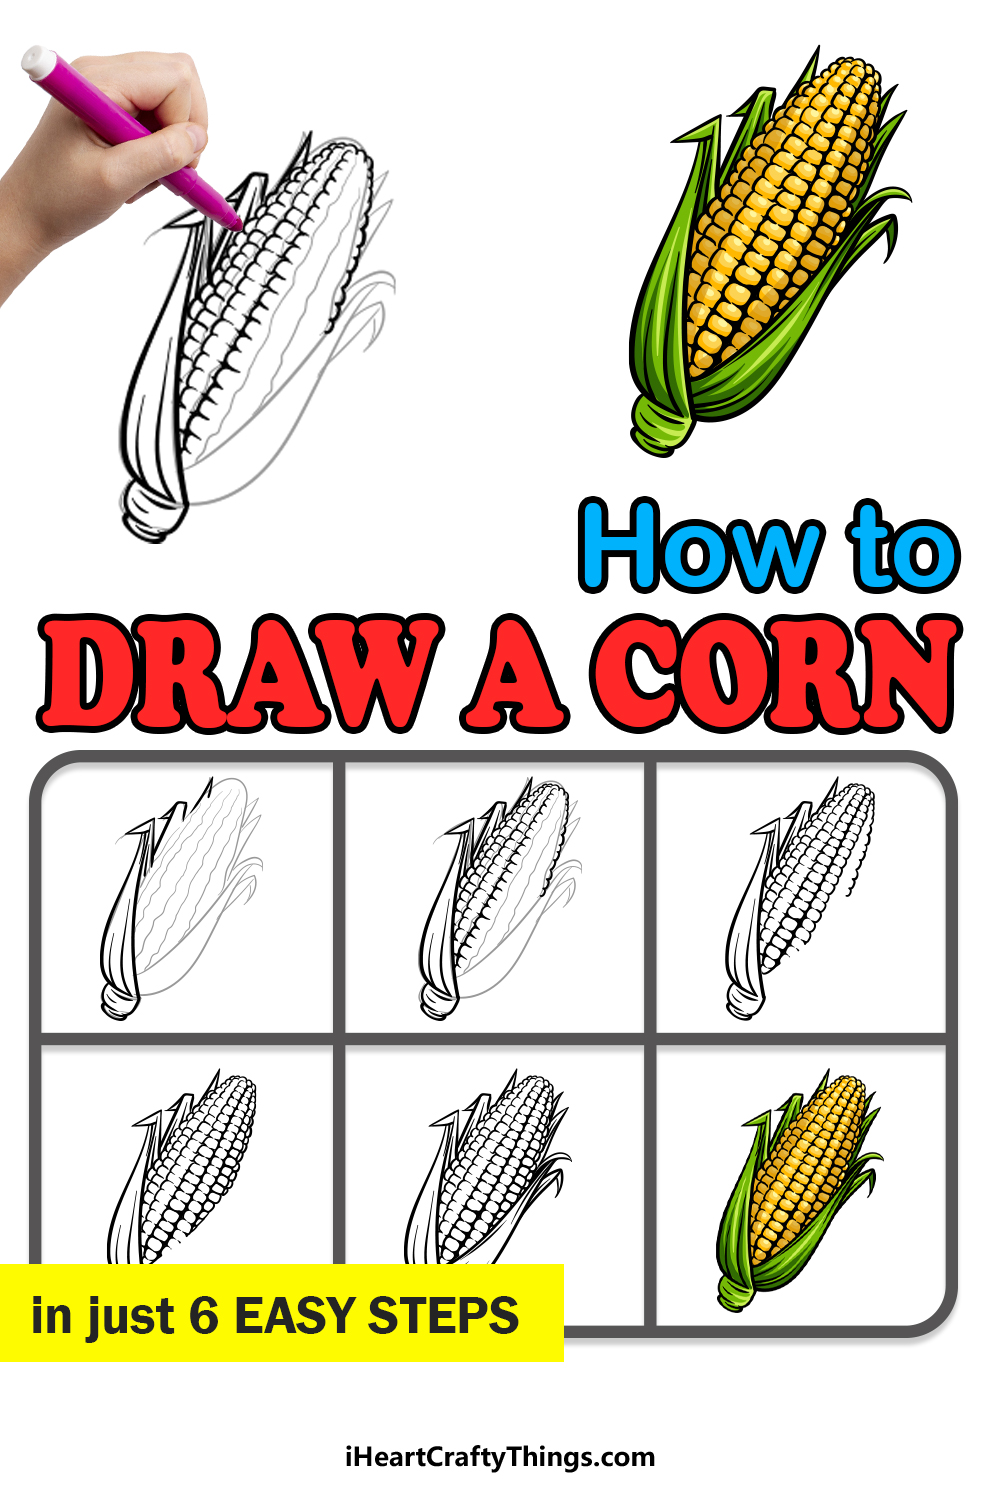 how to draw a corn in 6 easy steps